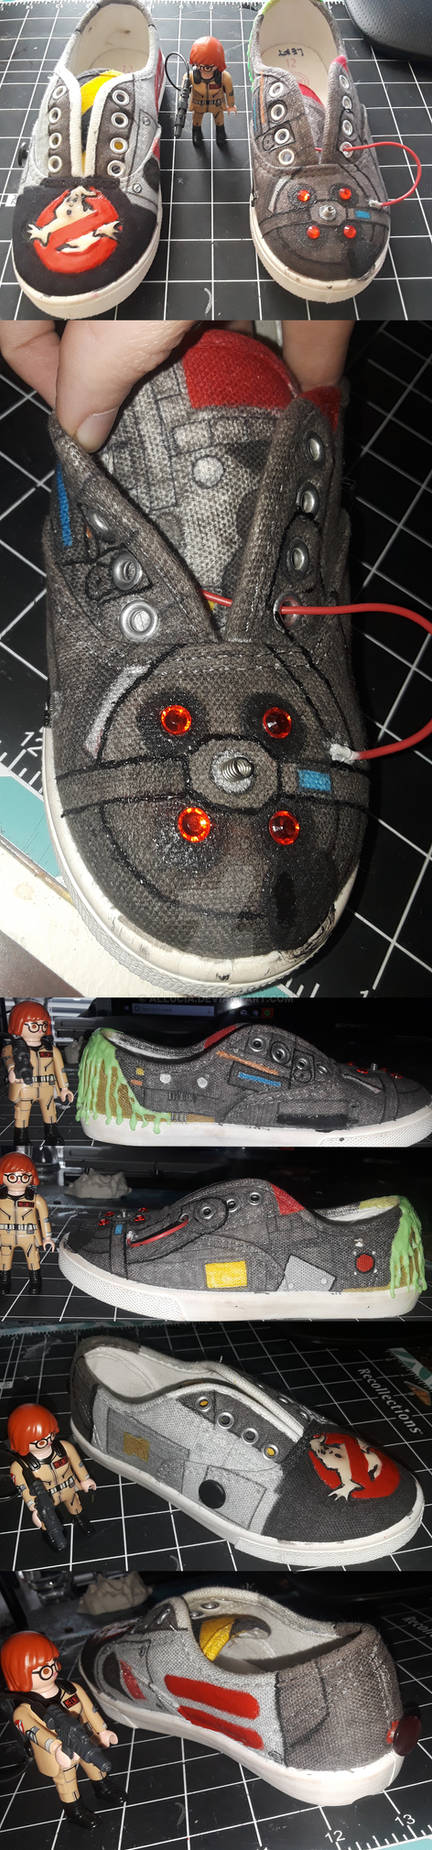 Custom Ghostbusters Sneakers [WiP]